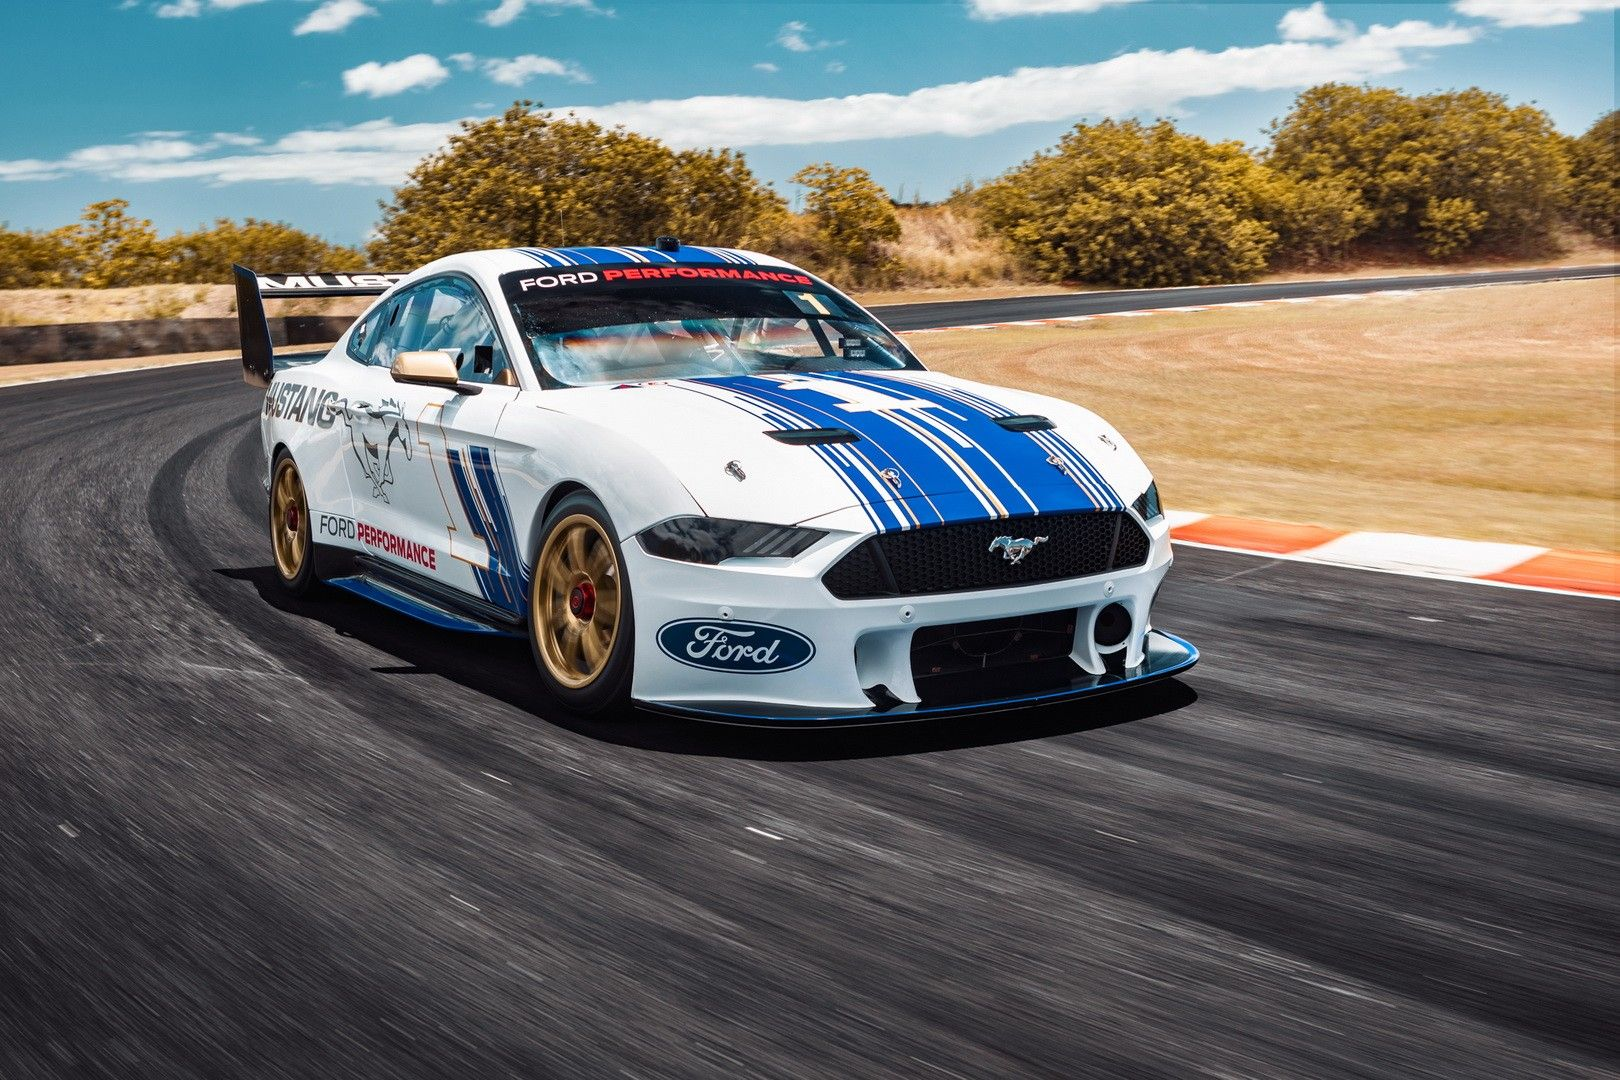 Ford Mustang Racer Revealed Ahead Of The 2019 Australia Supercars Championship Ford Mustang Australia Ford Mustang Super Cars